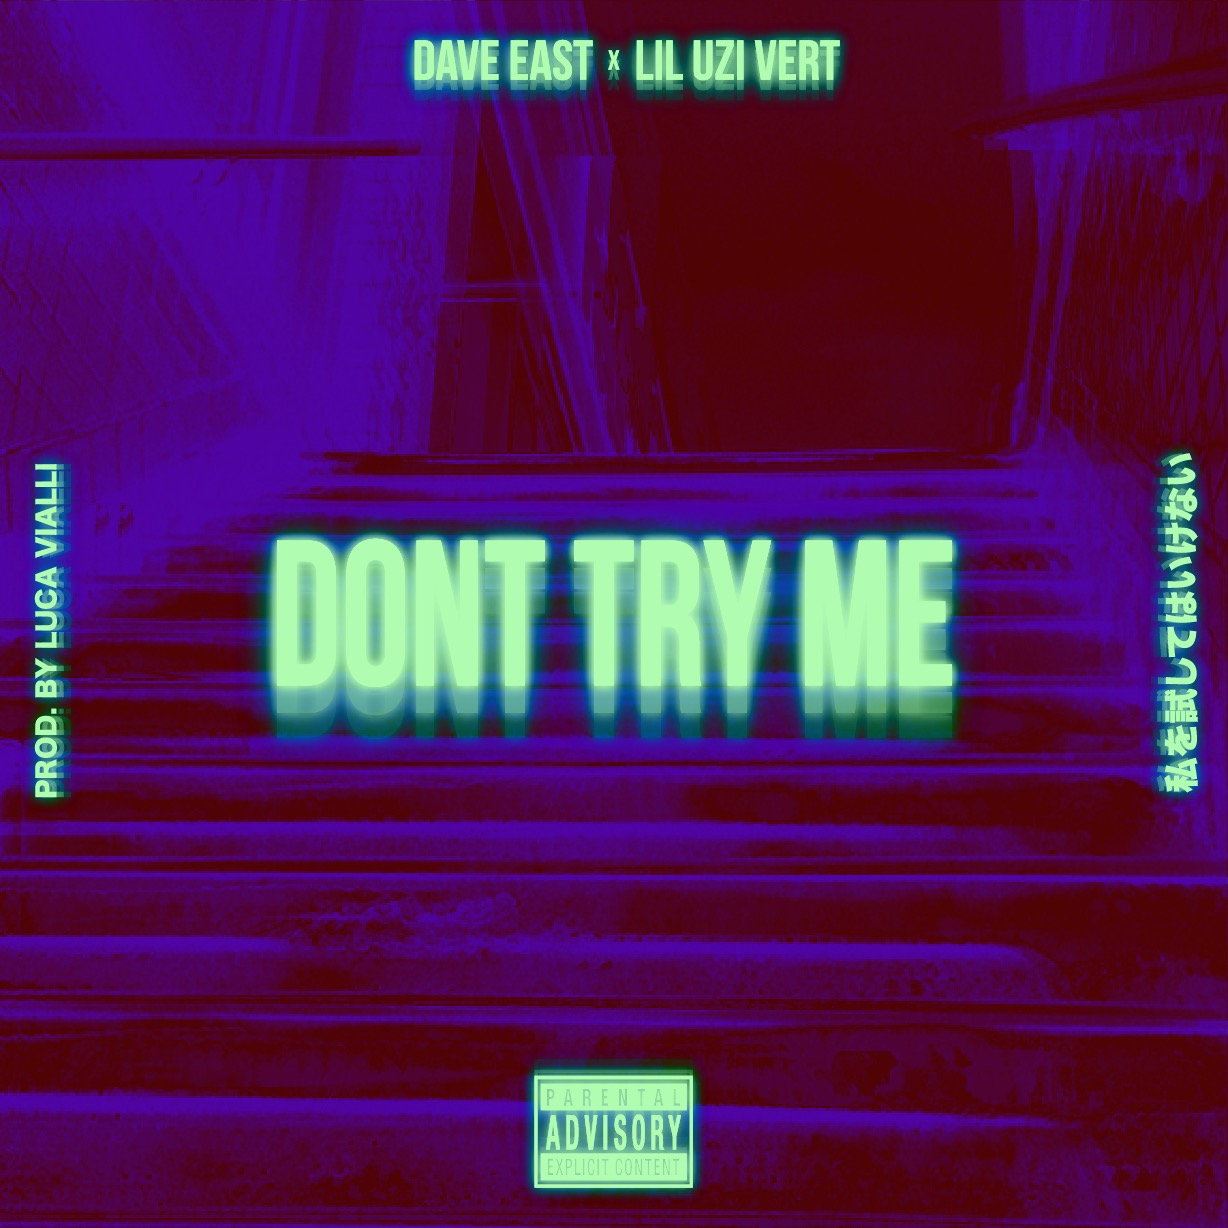 dave east lil uzi vert don't try me